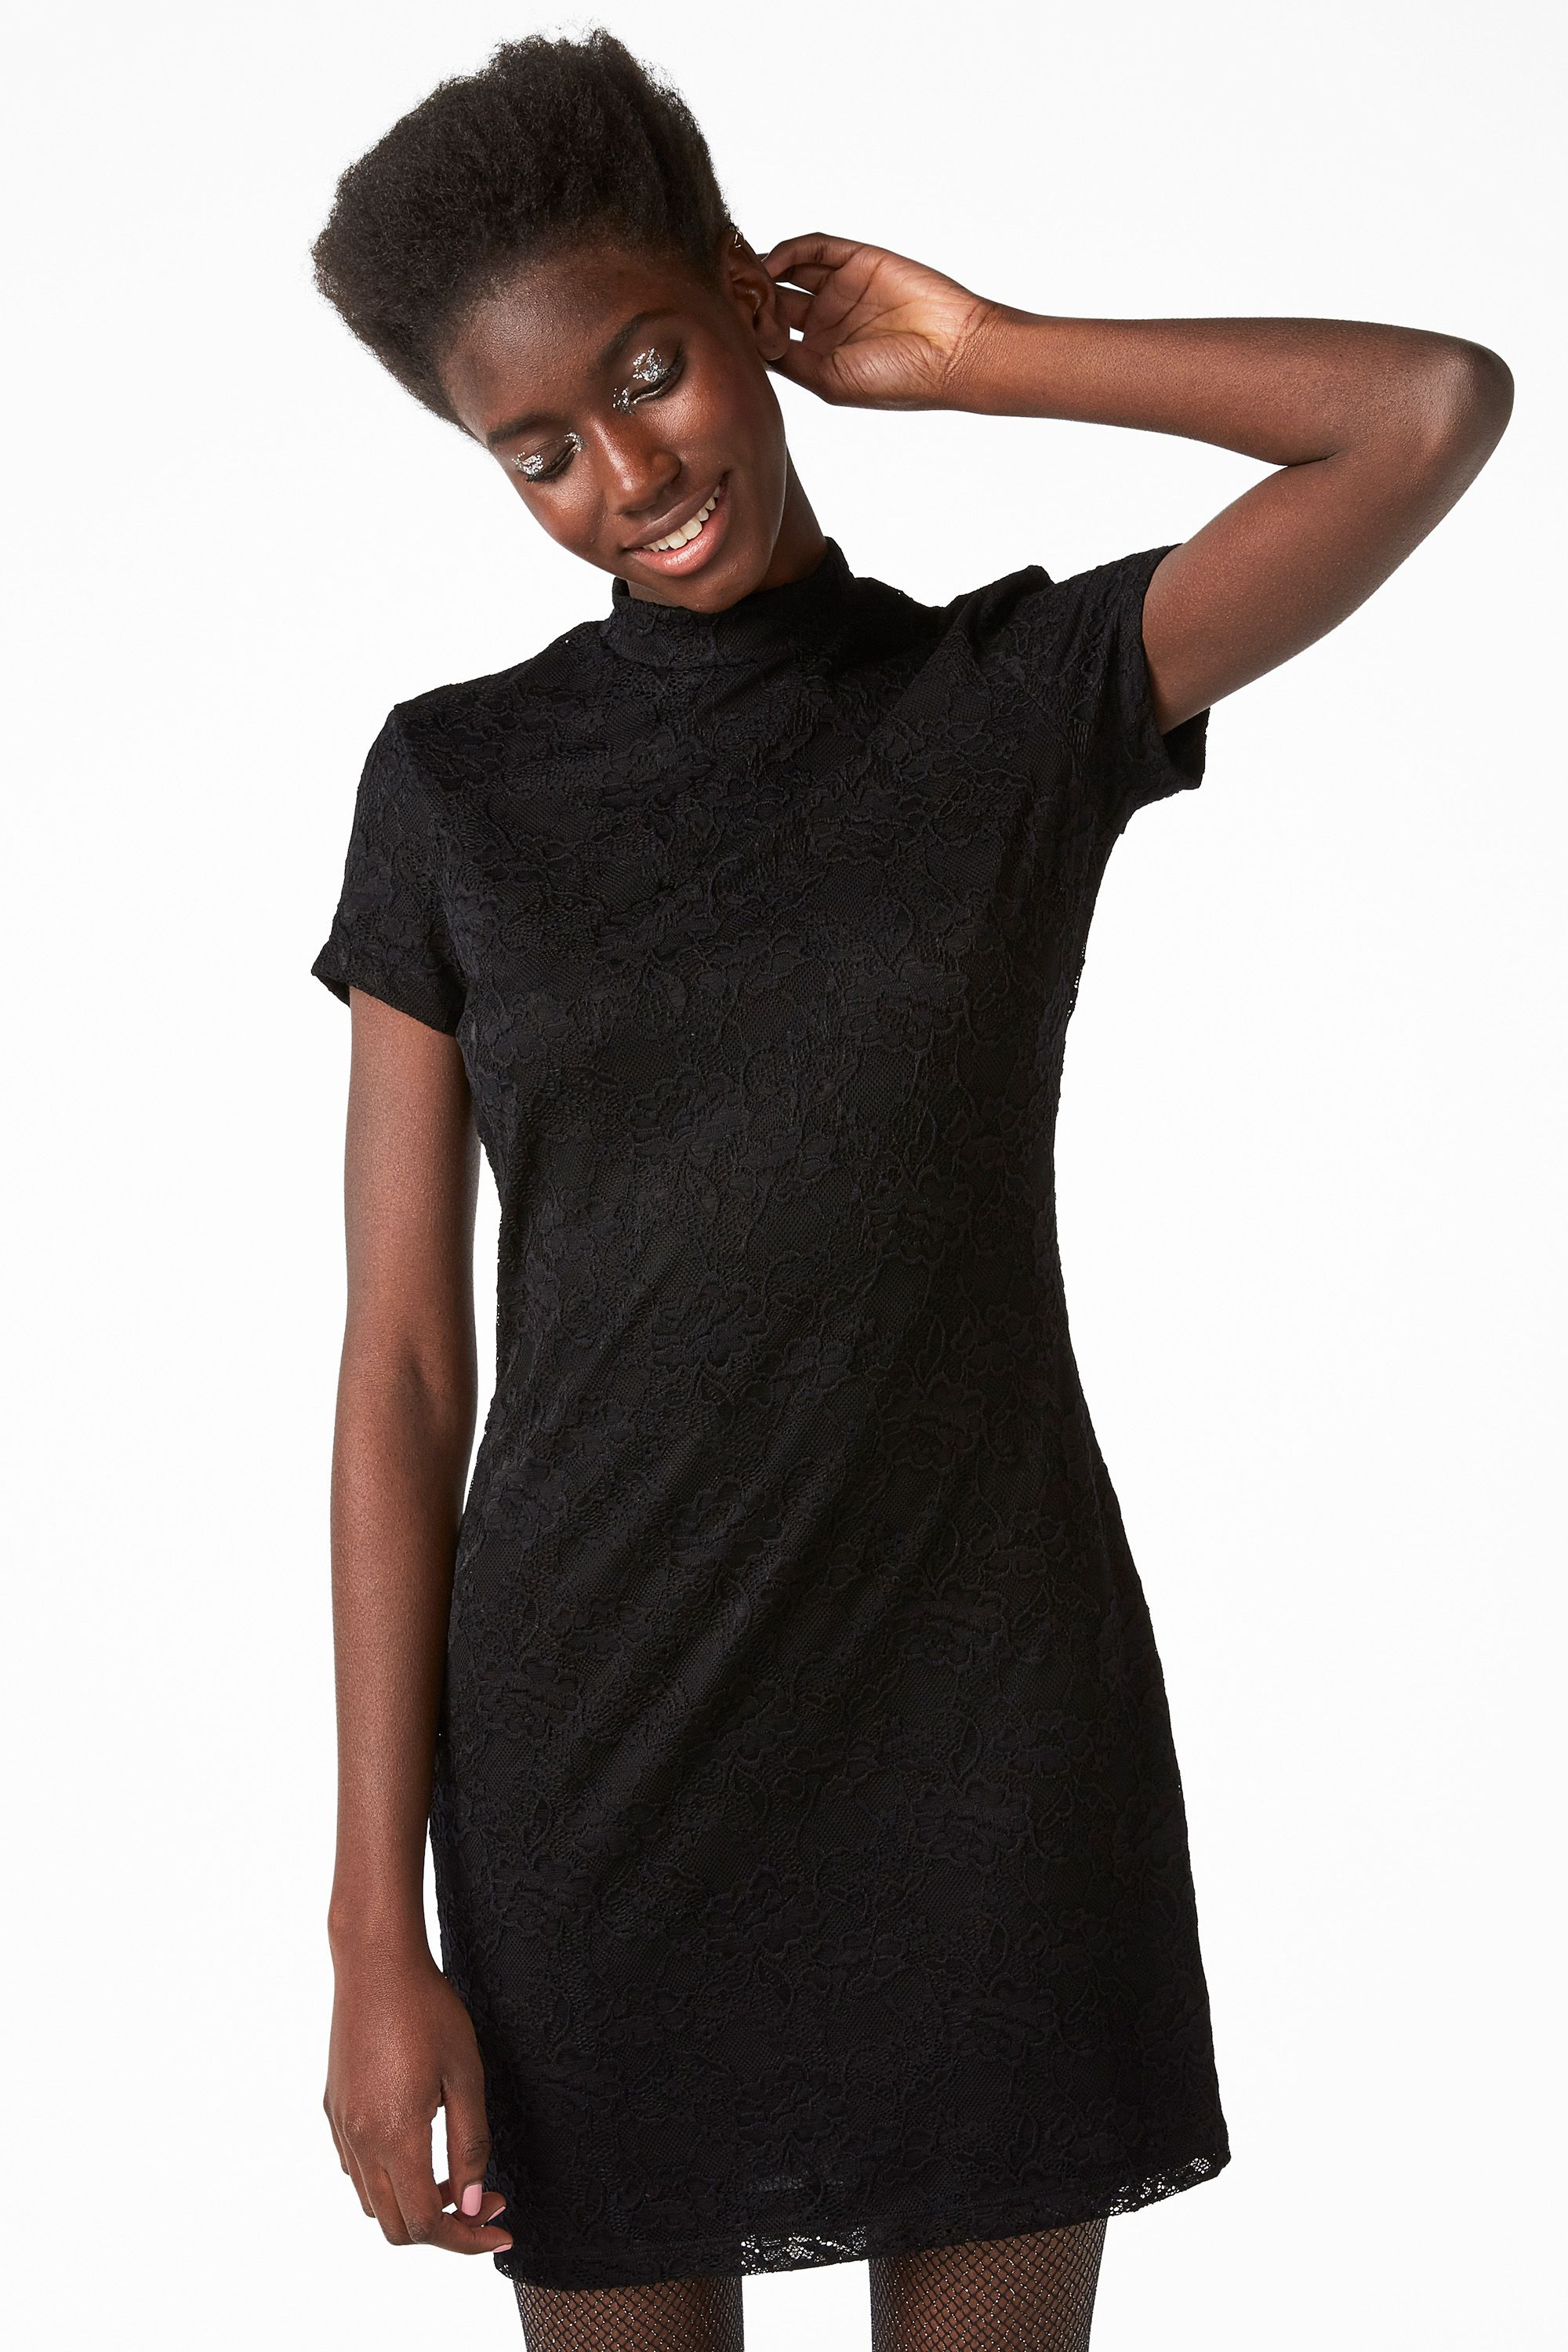 The ulittle black dressu just got a monkistyle makeover with this